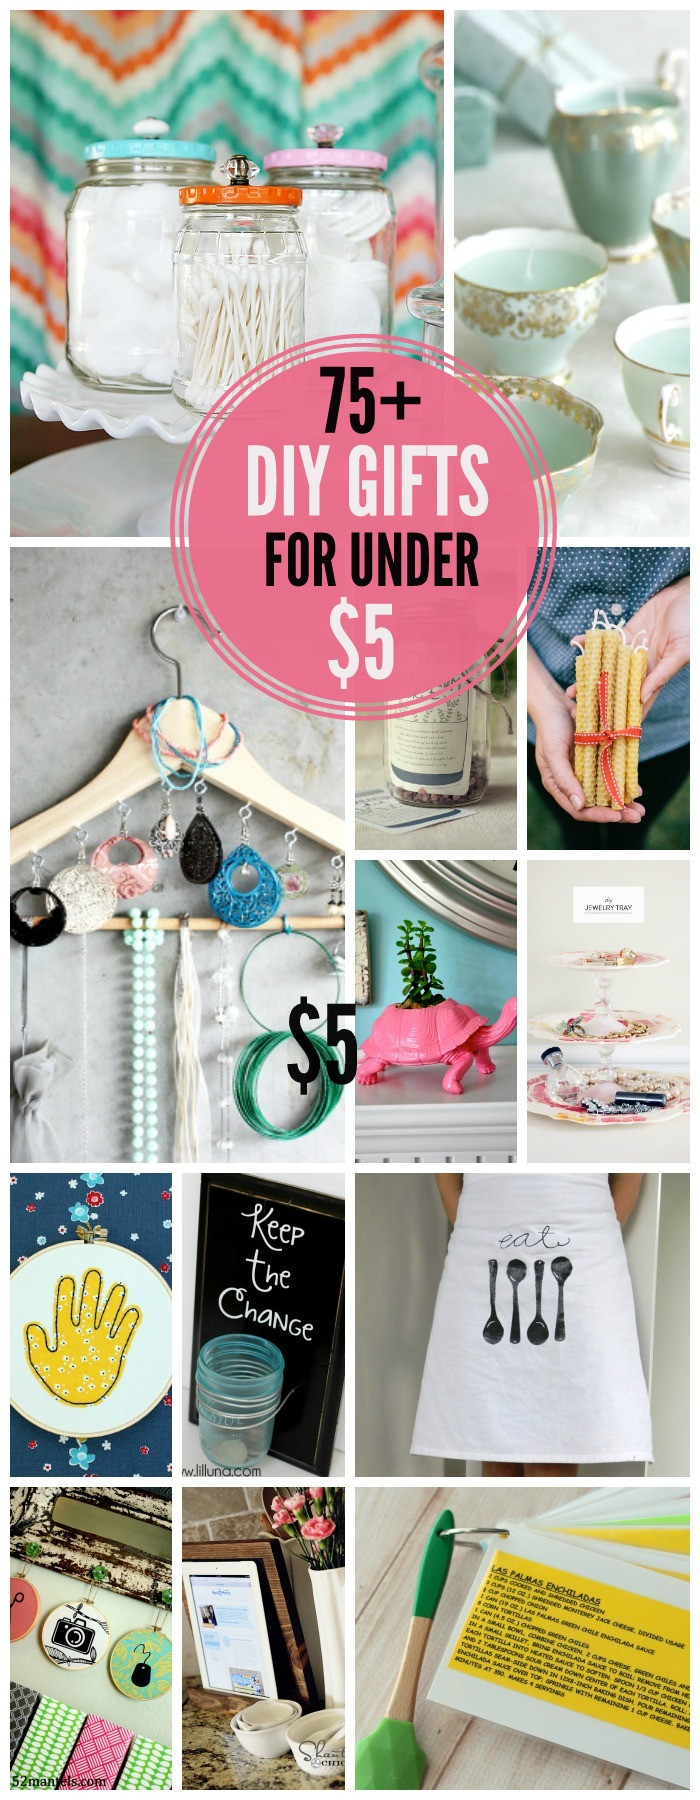 Best ideas about Top Gift Ideas . Save or Pin Inexpensive Gift Ideas Now.